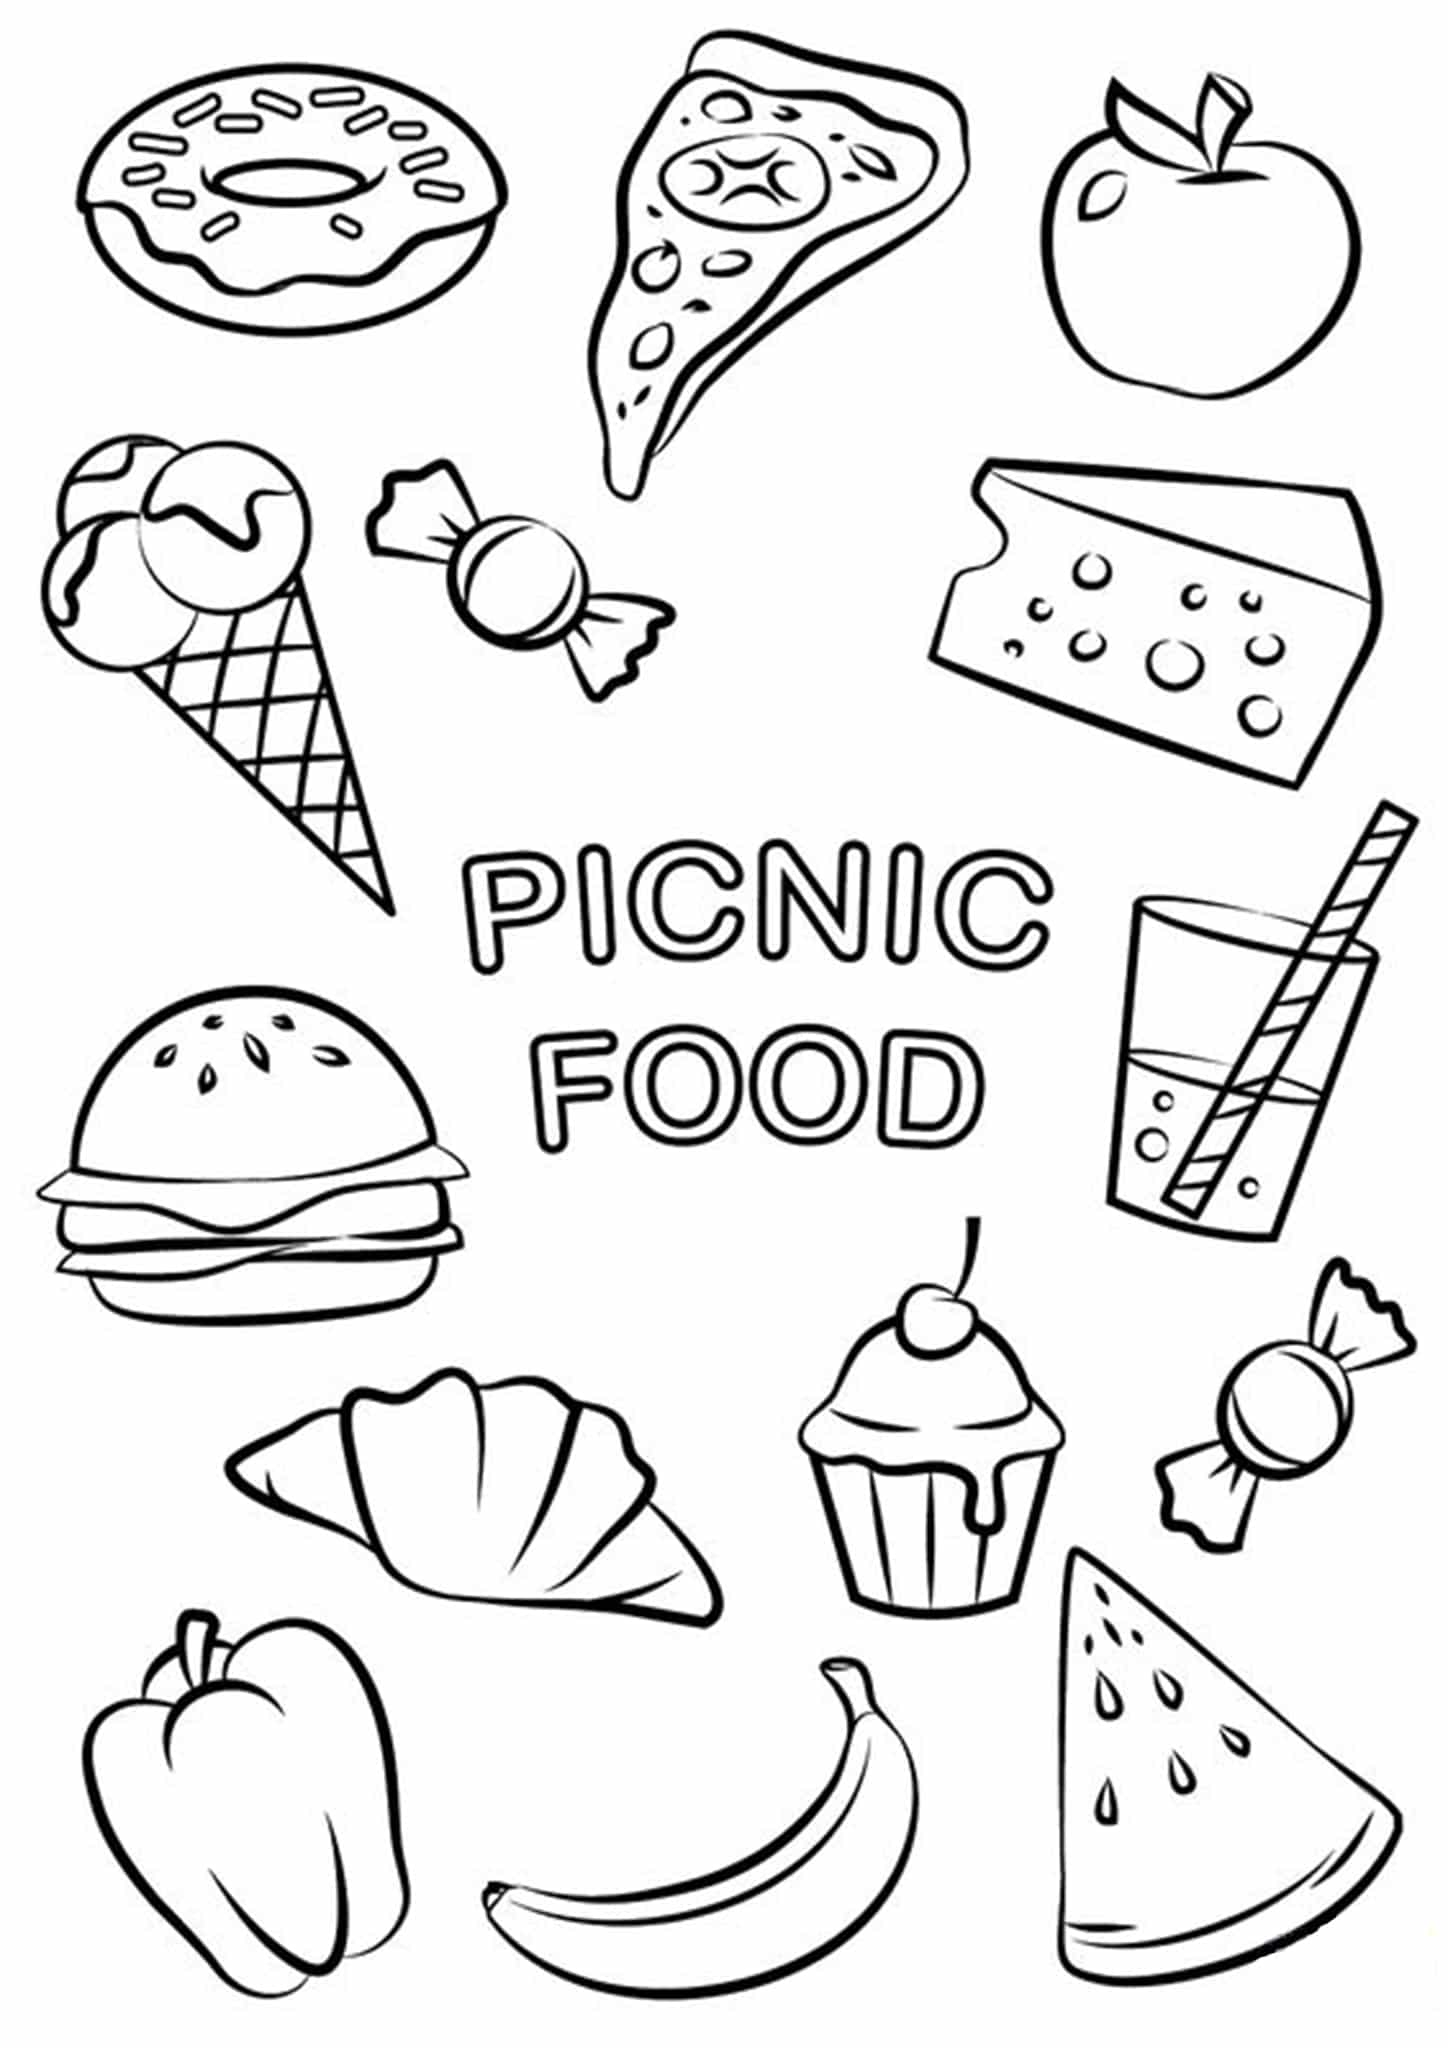 pictures of food coloring free easy to print food coloring pages tulamama of coloring pictures food